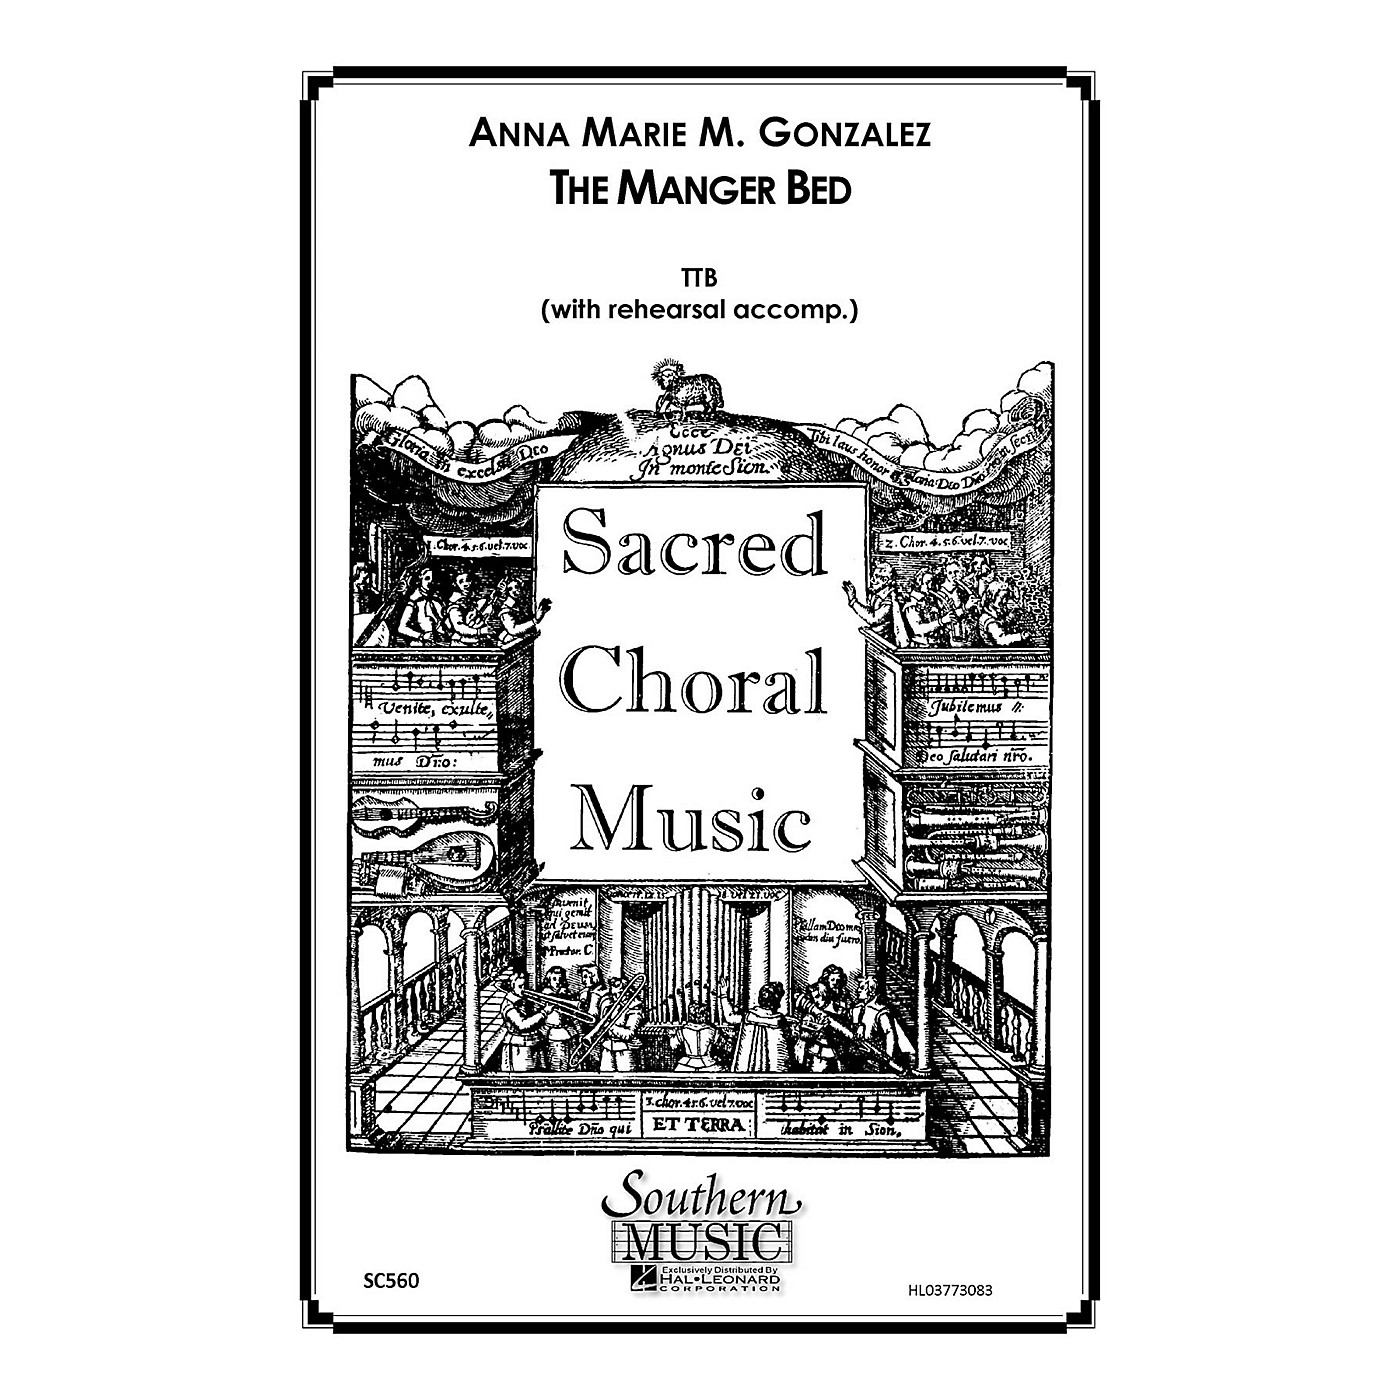 Hal Leonard The Manger Bed (Choral Music/Octavo Sacred Ttb) TTB Composed by Gonzalez, Anna Marie thumbnail